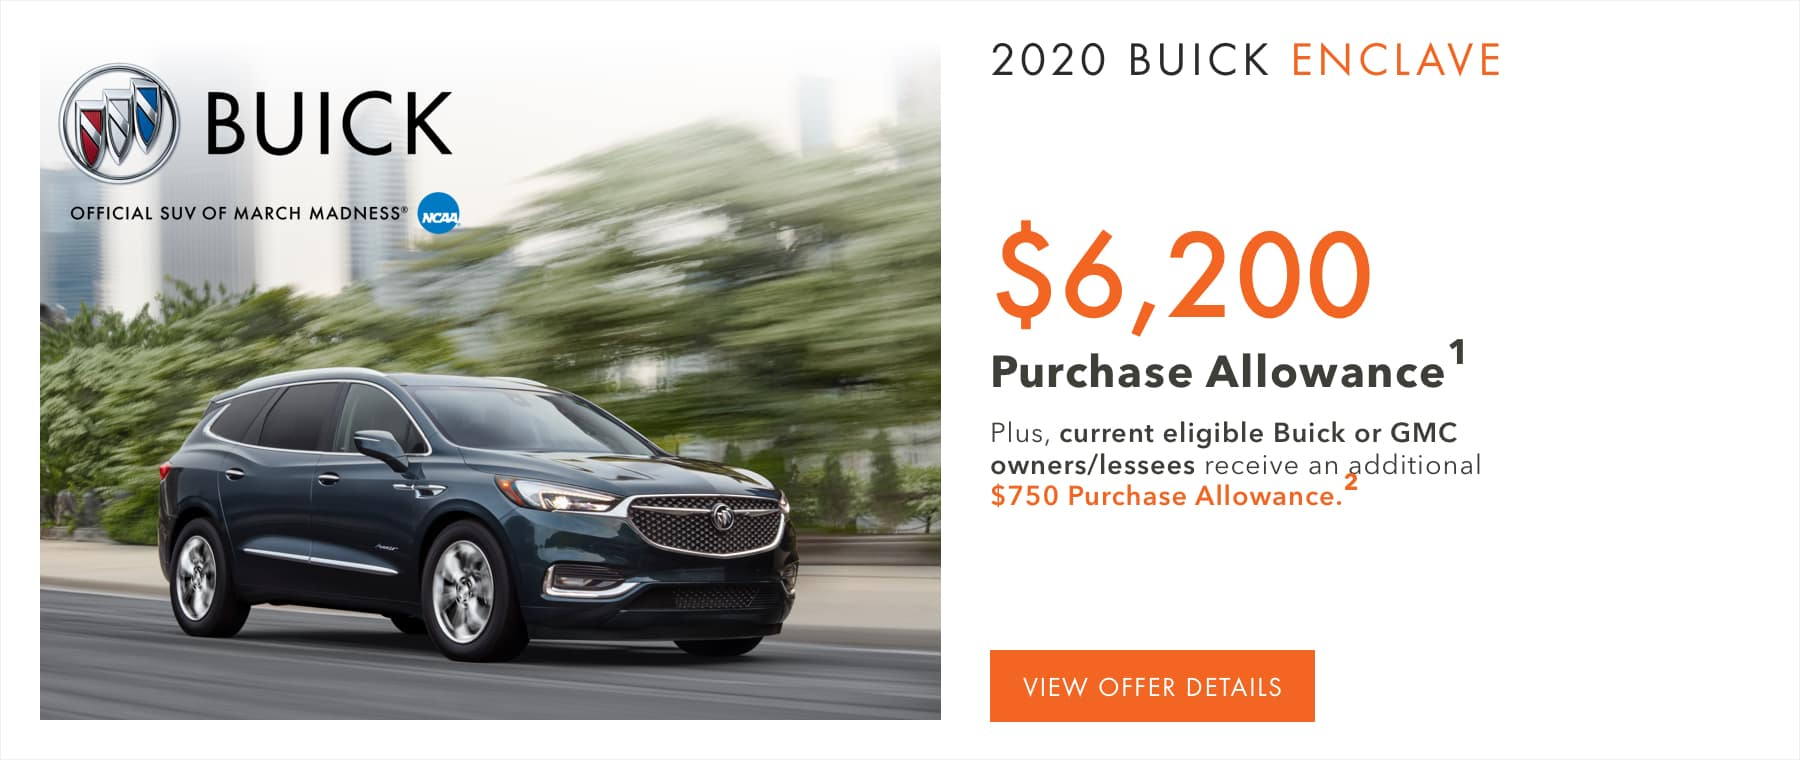 Price after all offers on this Enclave.1 Plus, current eligible Buick or GMC owners/lessees receive an additional $750 Purchase Allowance.2